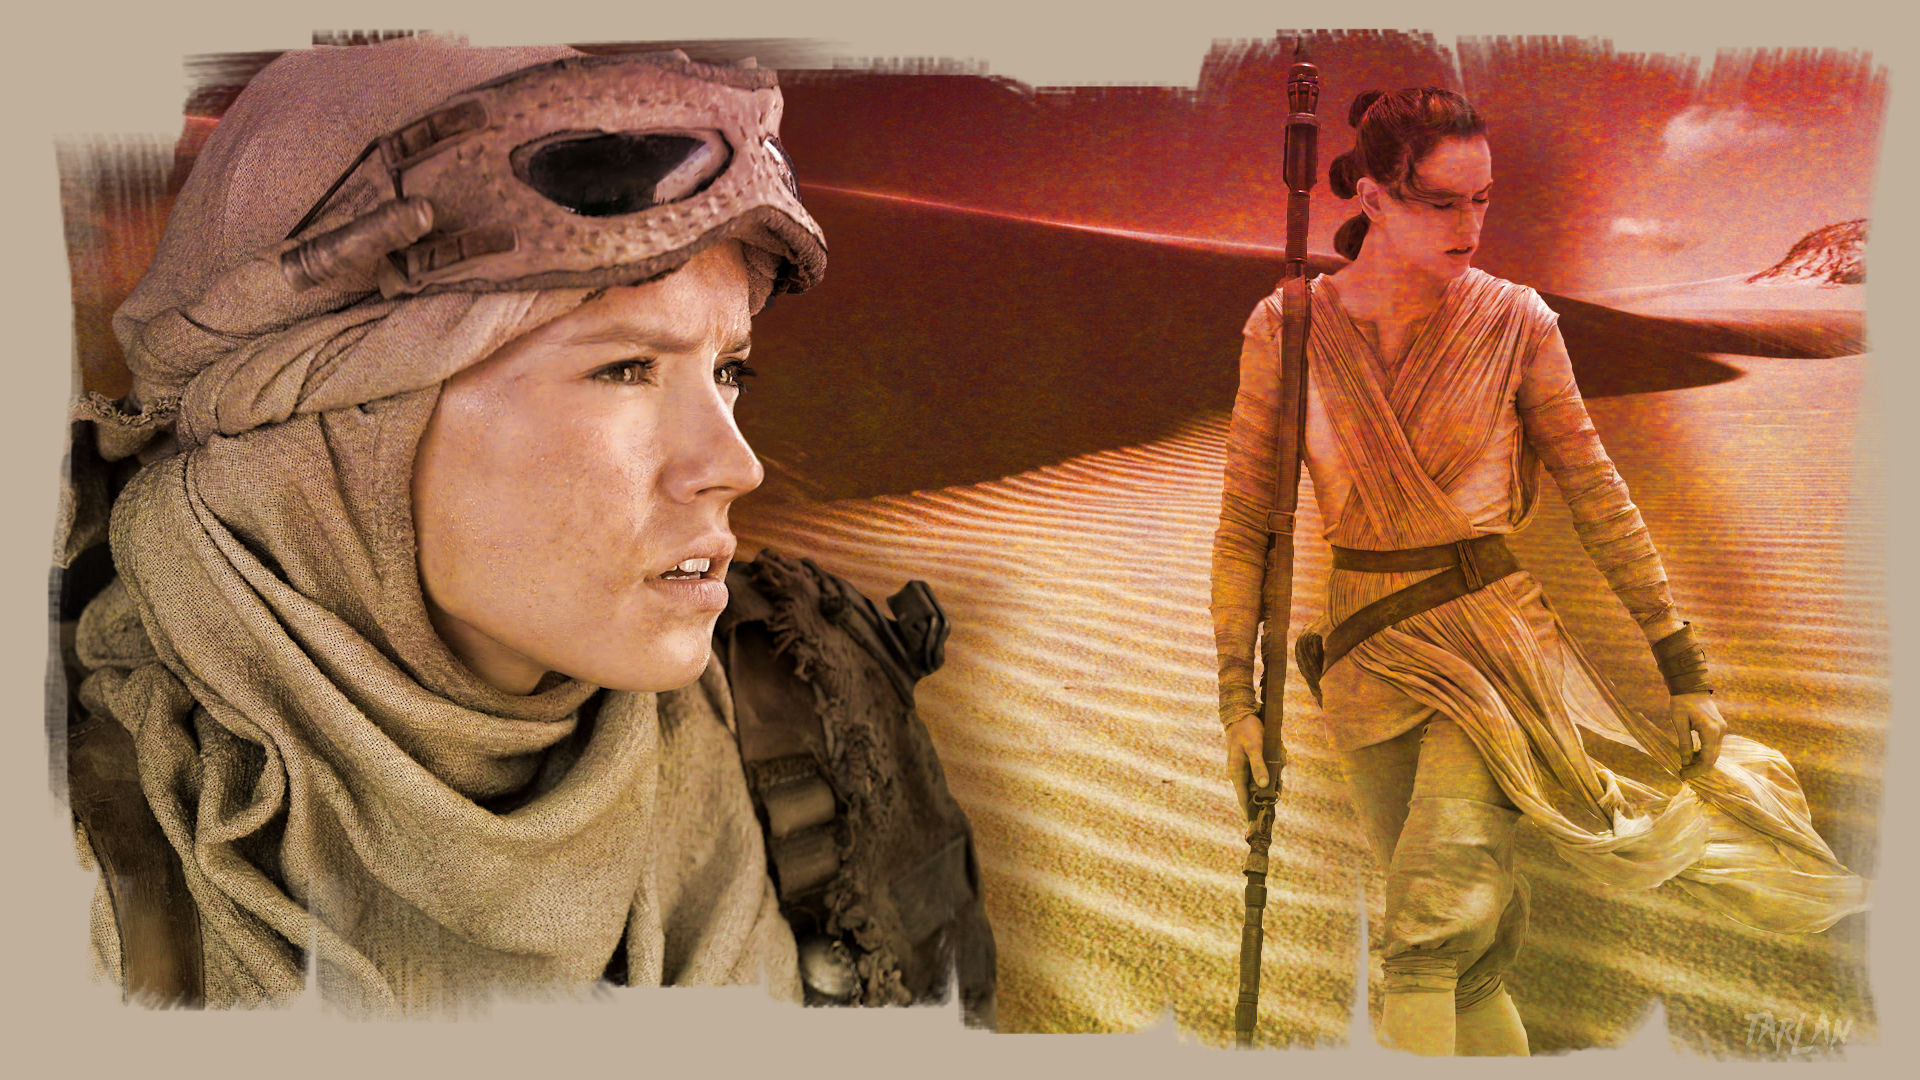 Star Wars - Rey 2 by Tarlan